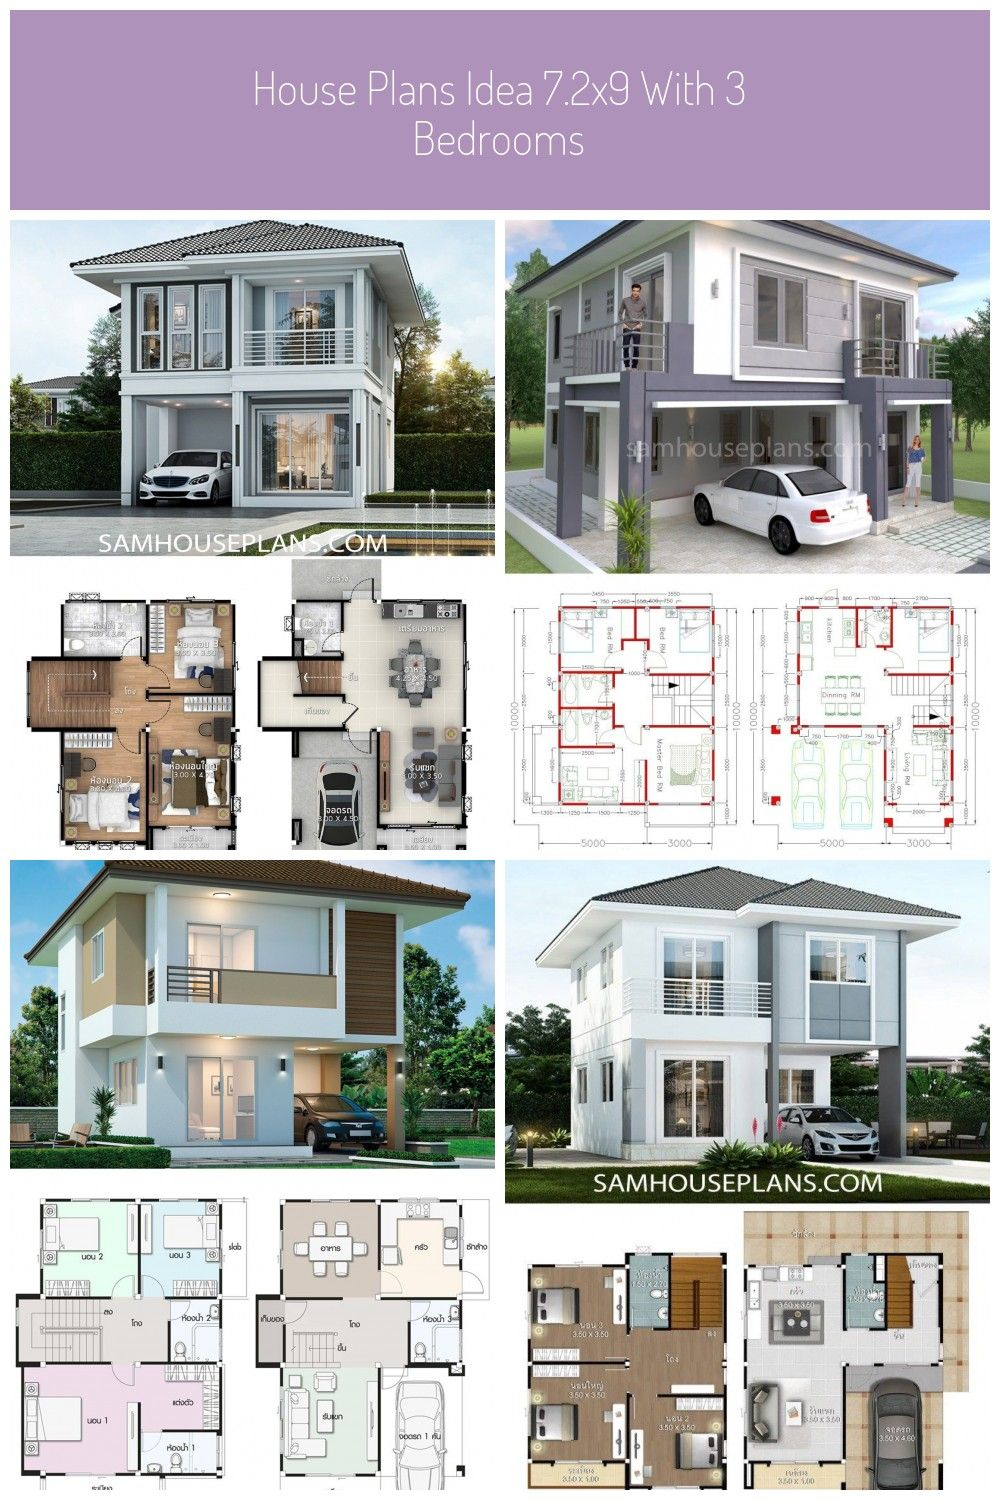 House Plans Idea 7 2x9 With 3 Bedrooms Sam House Plans House Design Plans House Plans Idea 7 2x9 With 3 Bedrooms In 2020 House Plans House Design Home Design Plans